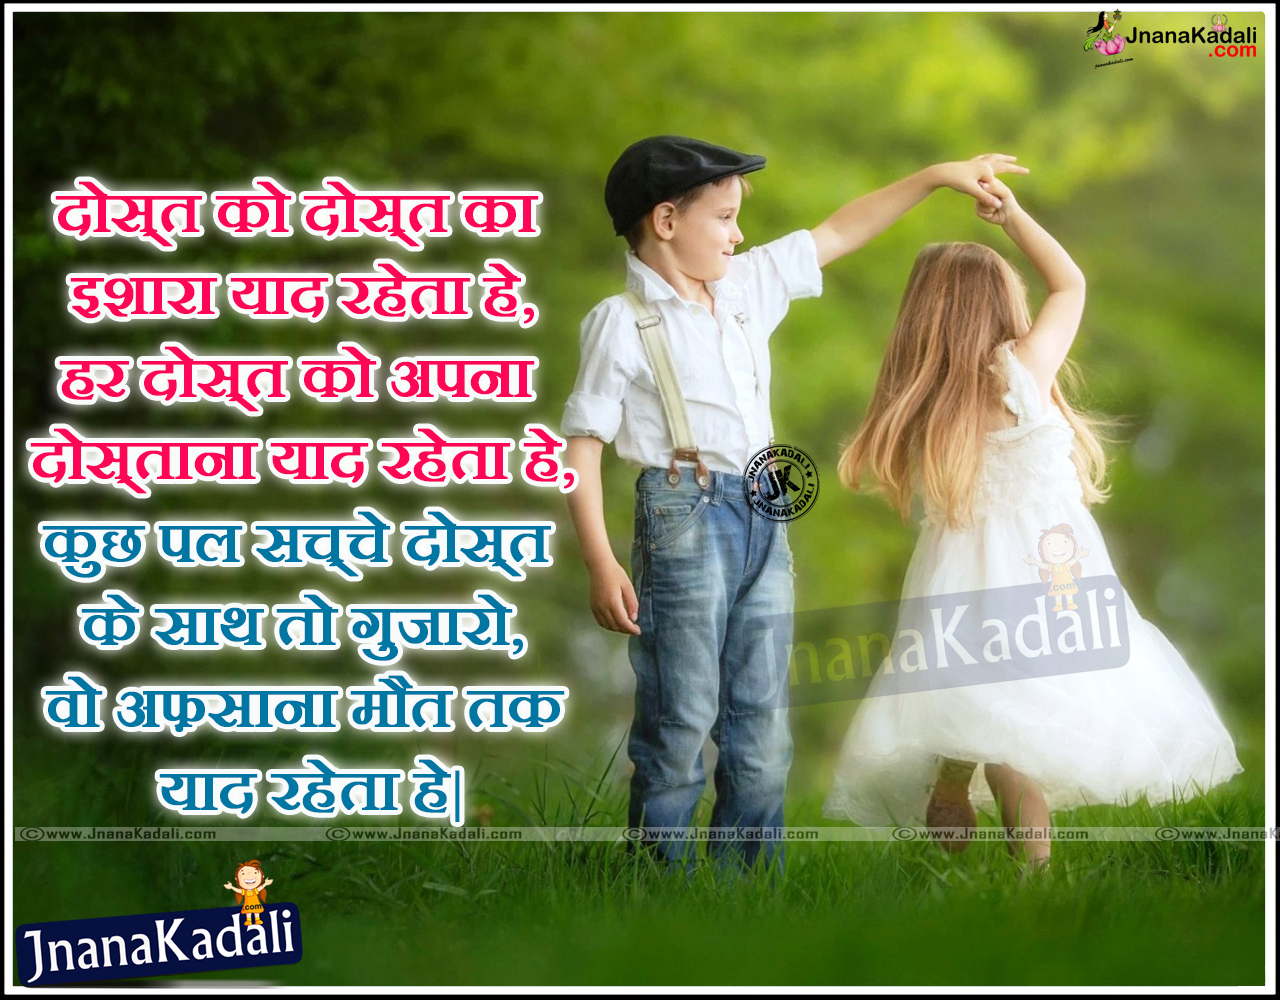 Friendship Quotes In Hindi With Images Hd Volkswagen Car